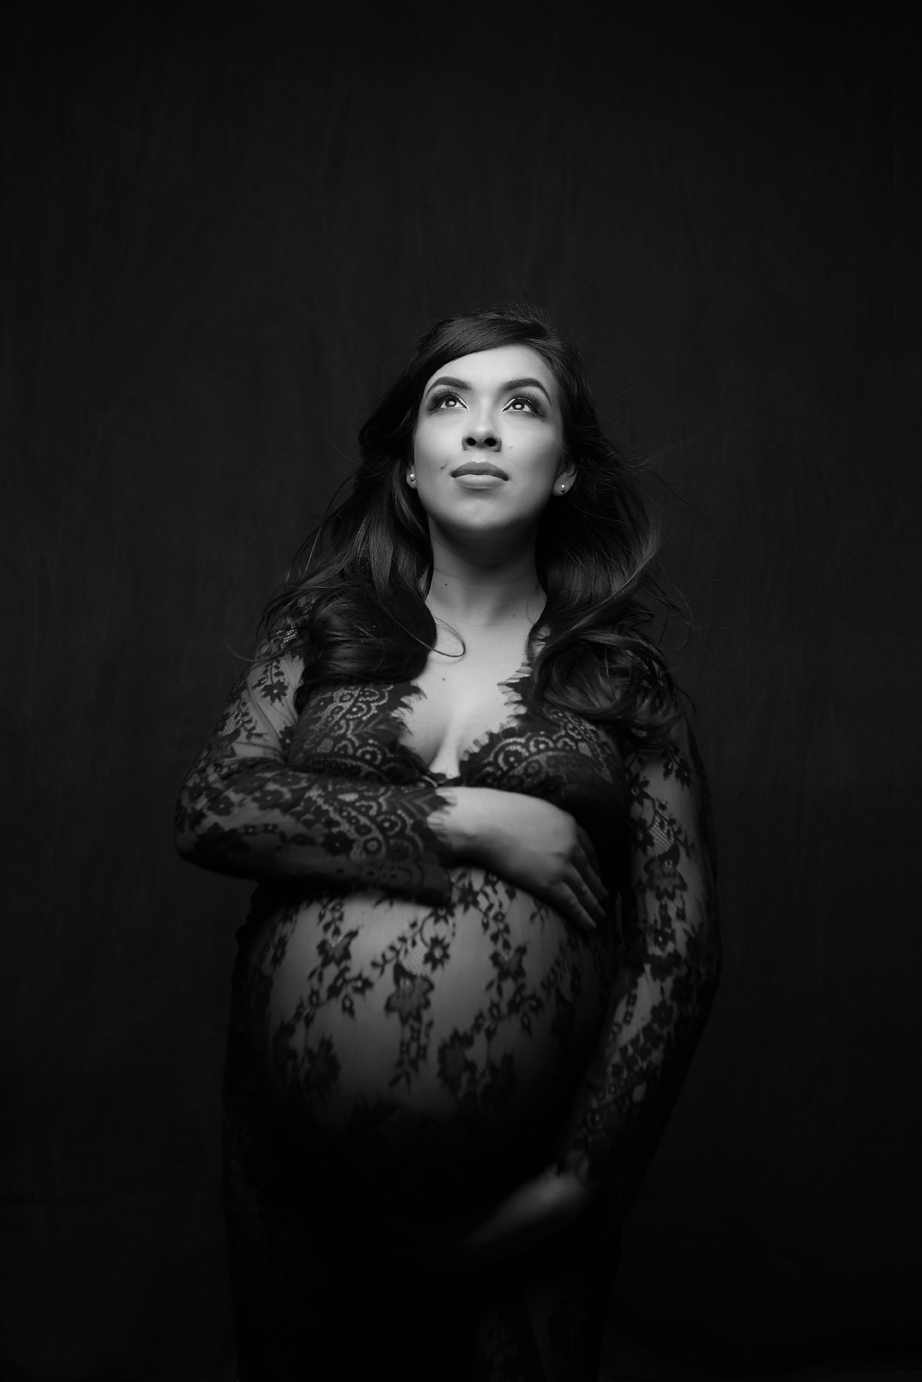 orange-county-maternity-photographer-irvine-studio-glamour-black-and-white-classy.jpg